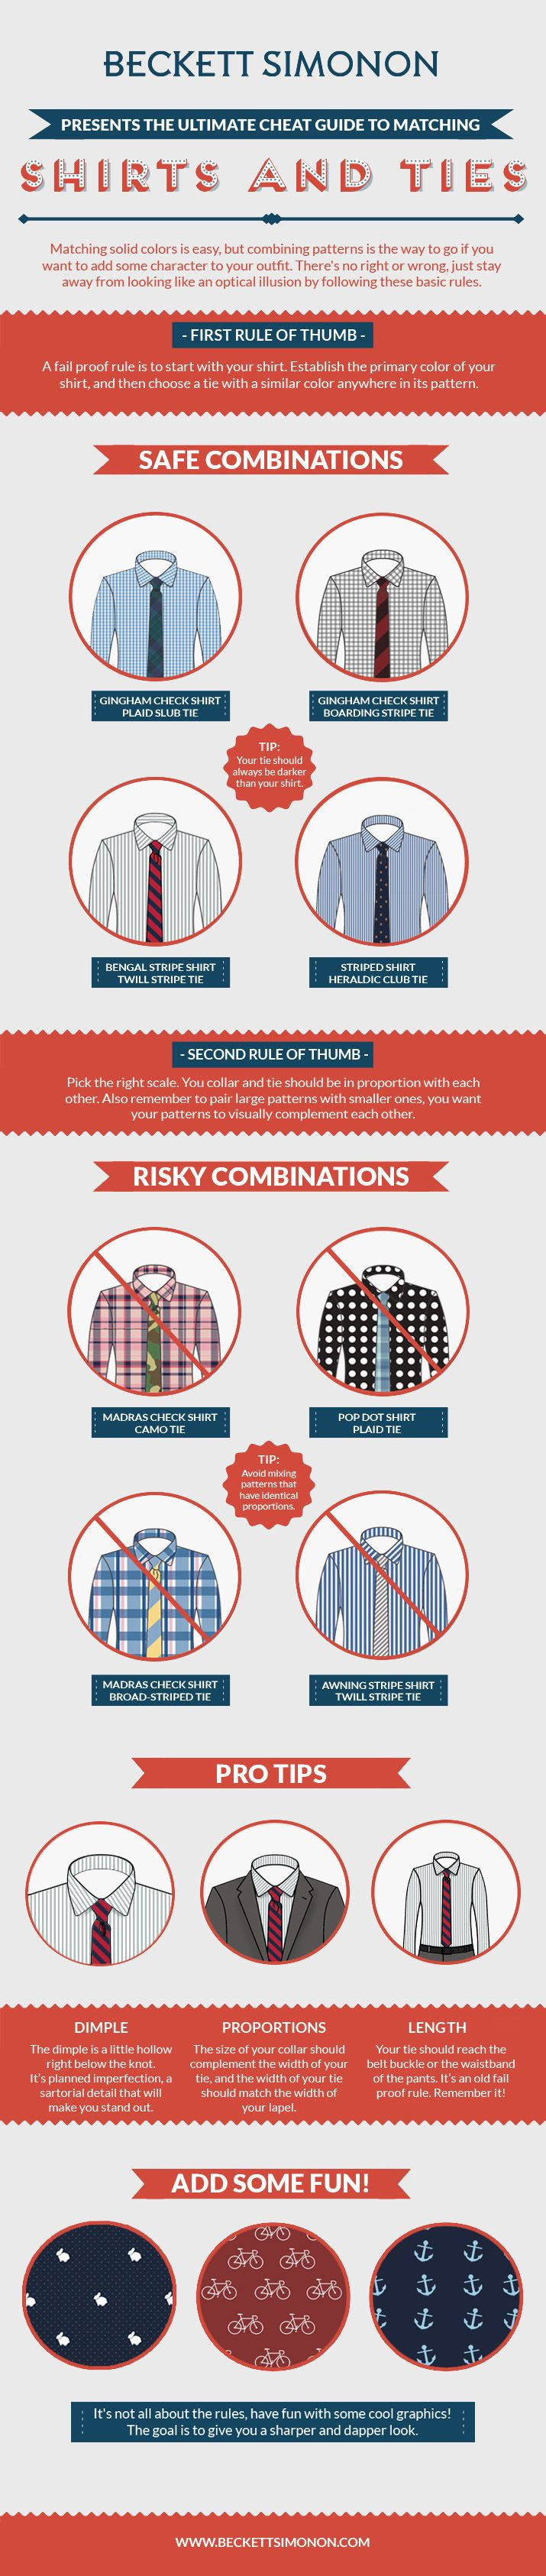 How to match shirt and tie patterns. - Beckett Simonon - The most amazing, stylish and affordable shoes for men.